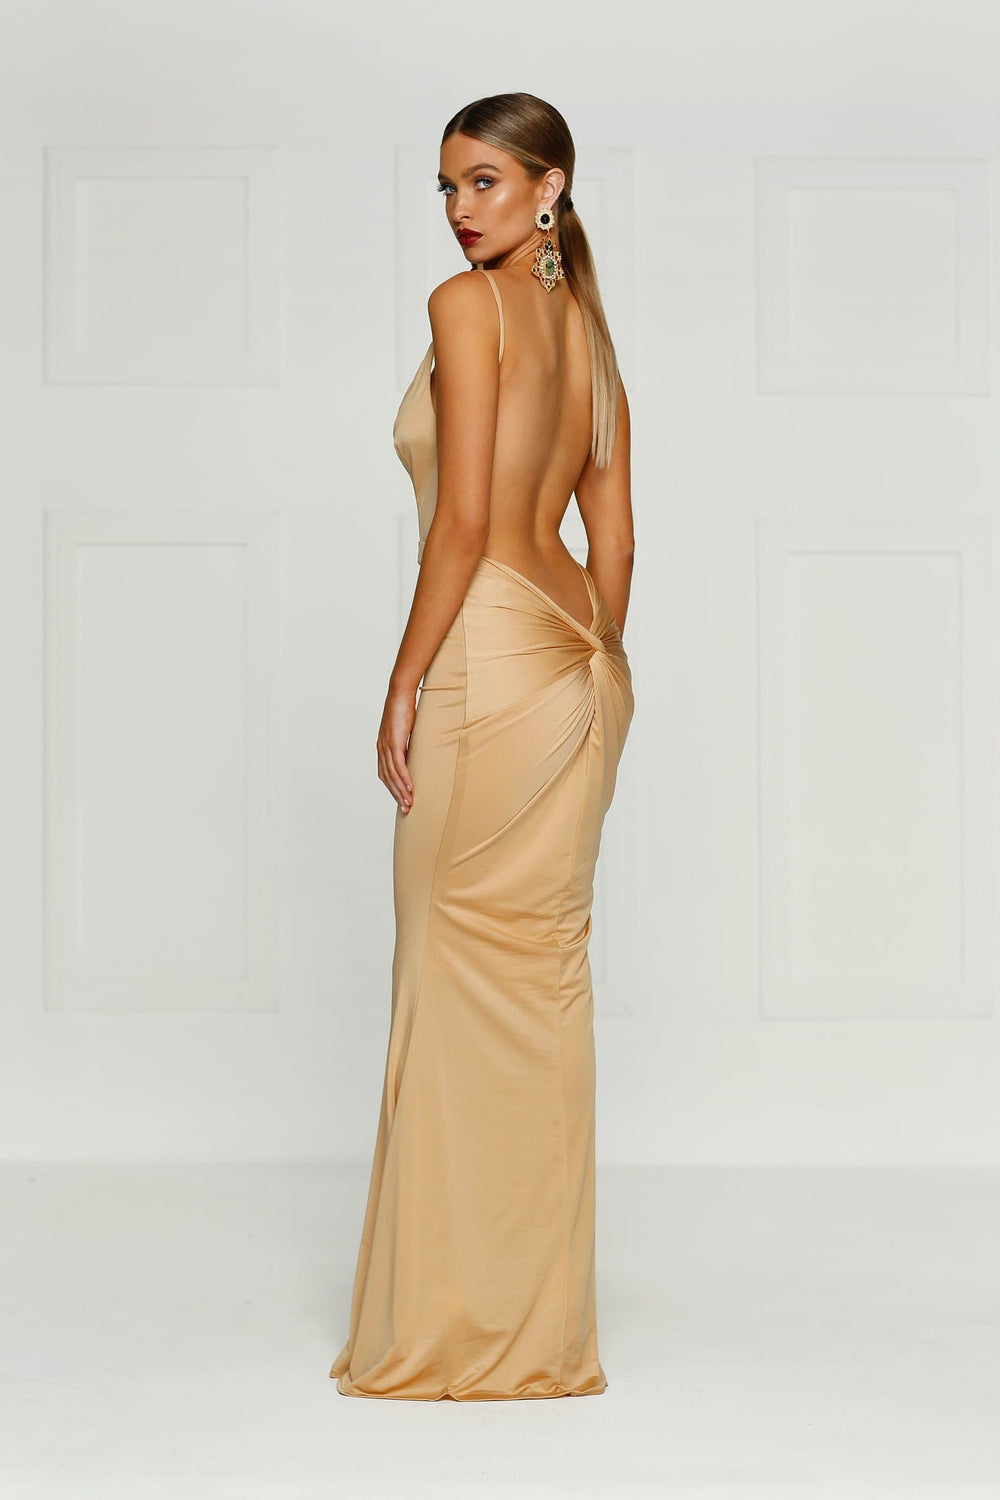 Penelope - Caramel Backless Dress with Back Knot Design & Plunge Neck